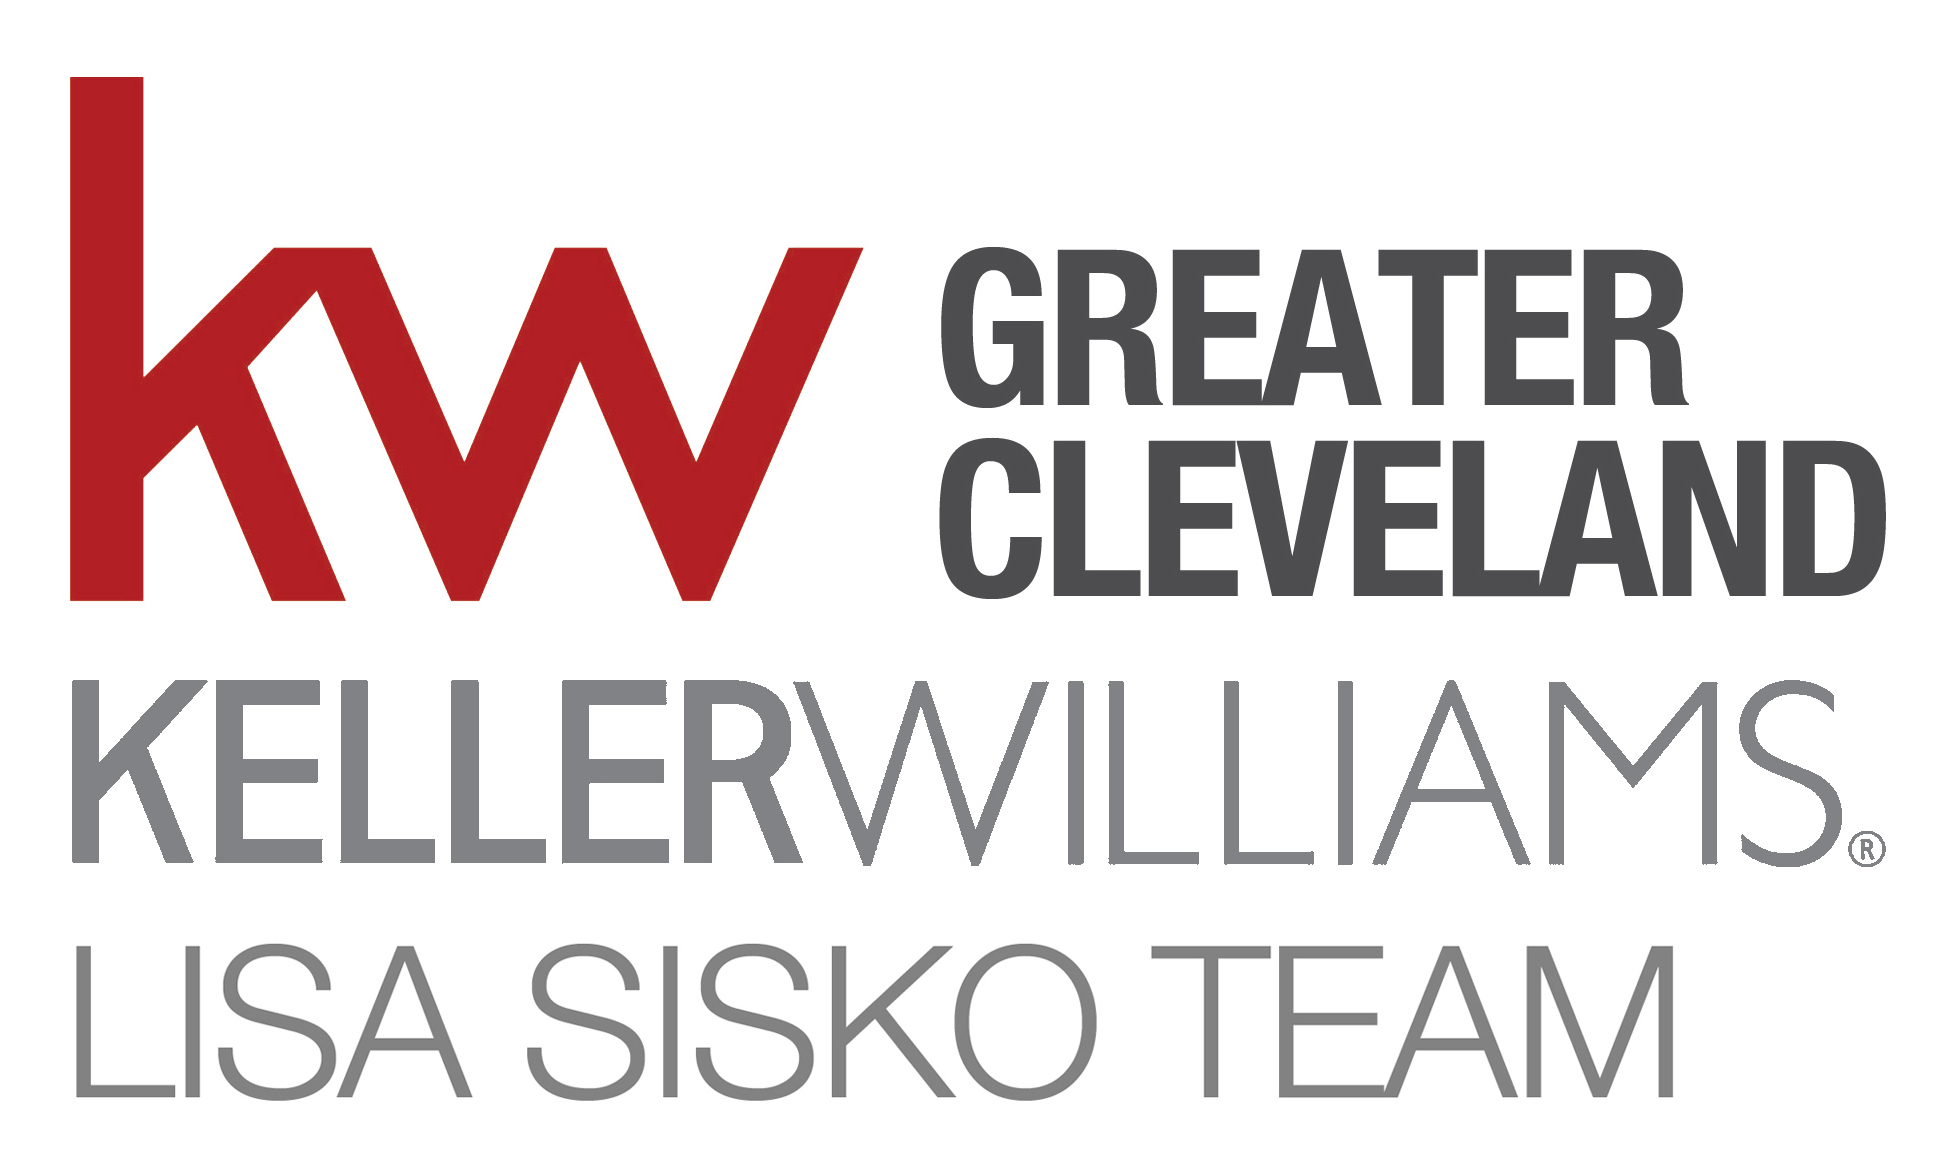 Lisa Sisko Team - Keller Williams Greater Cleveland logo